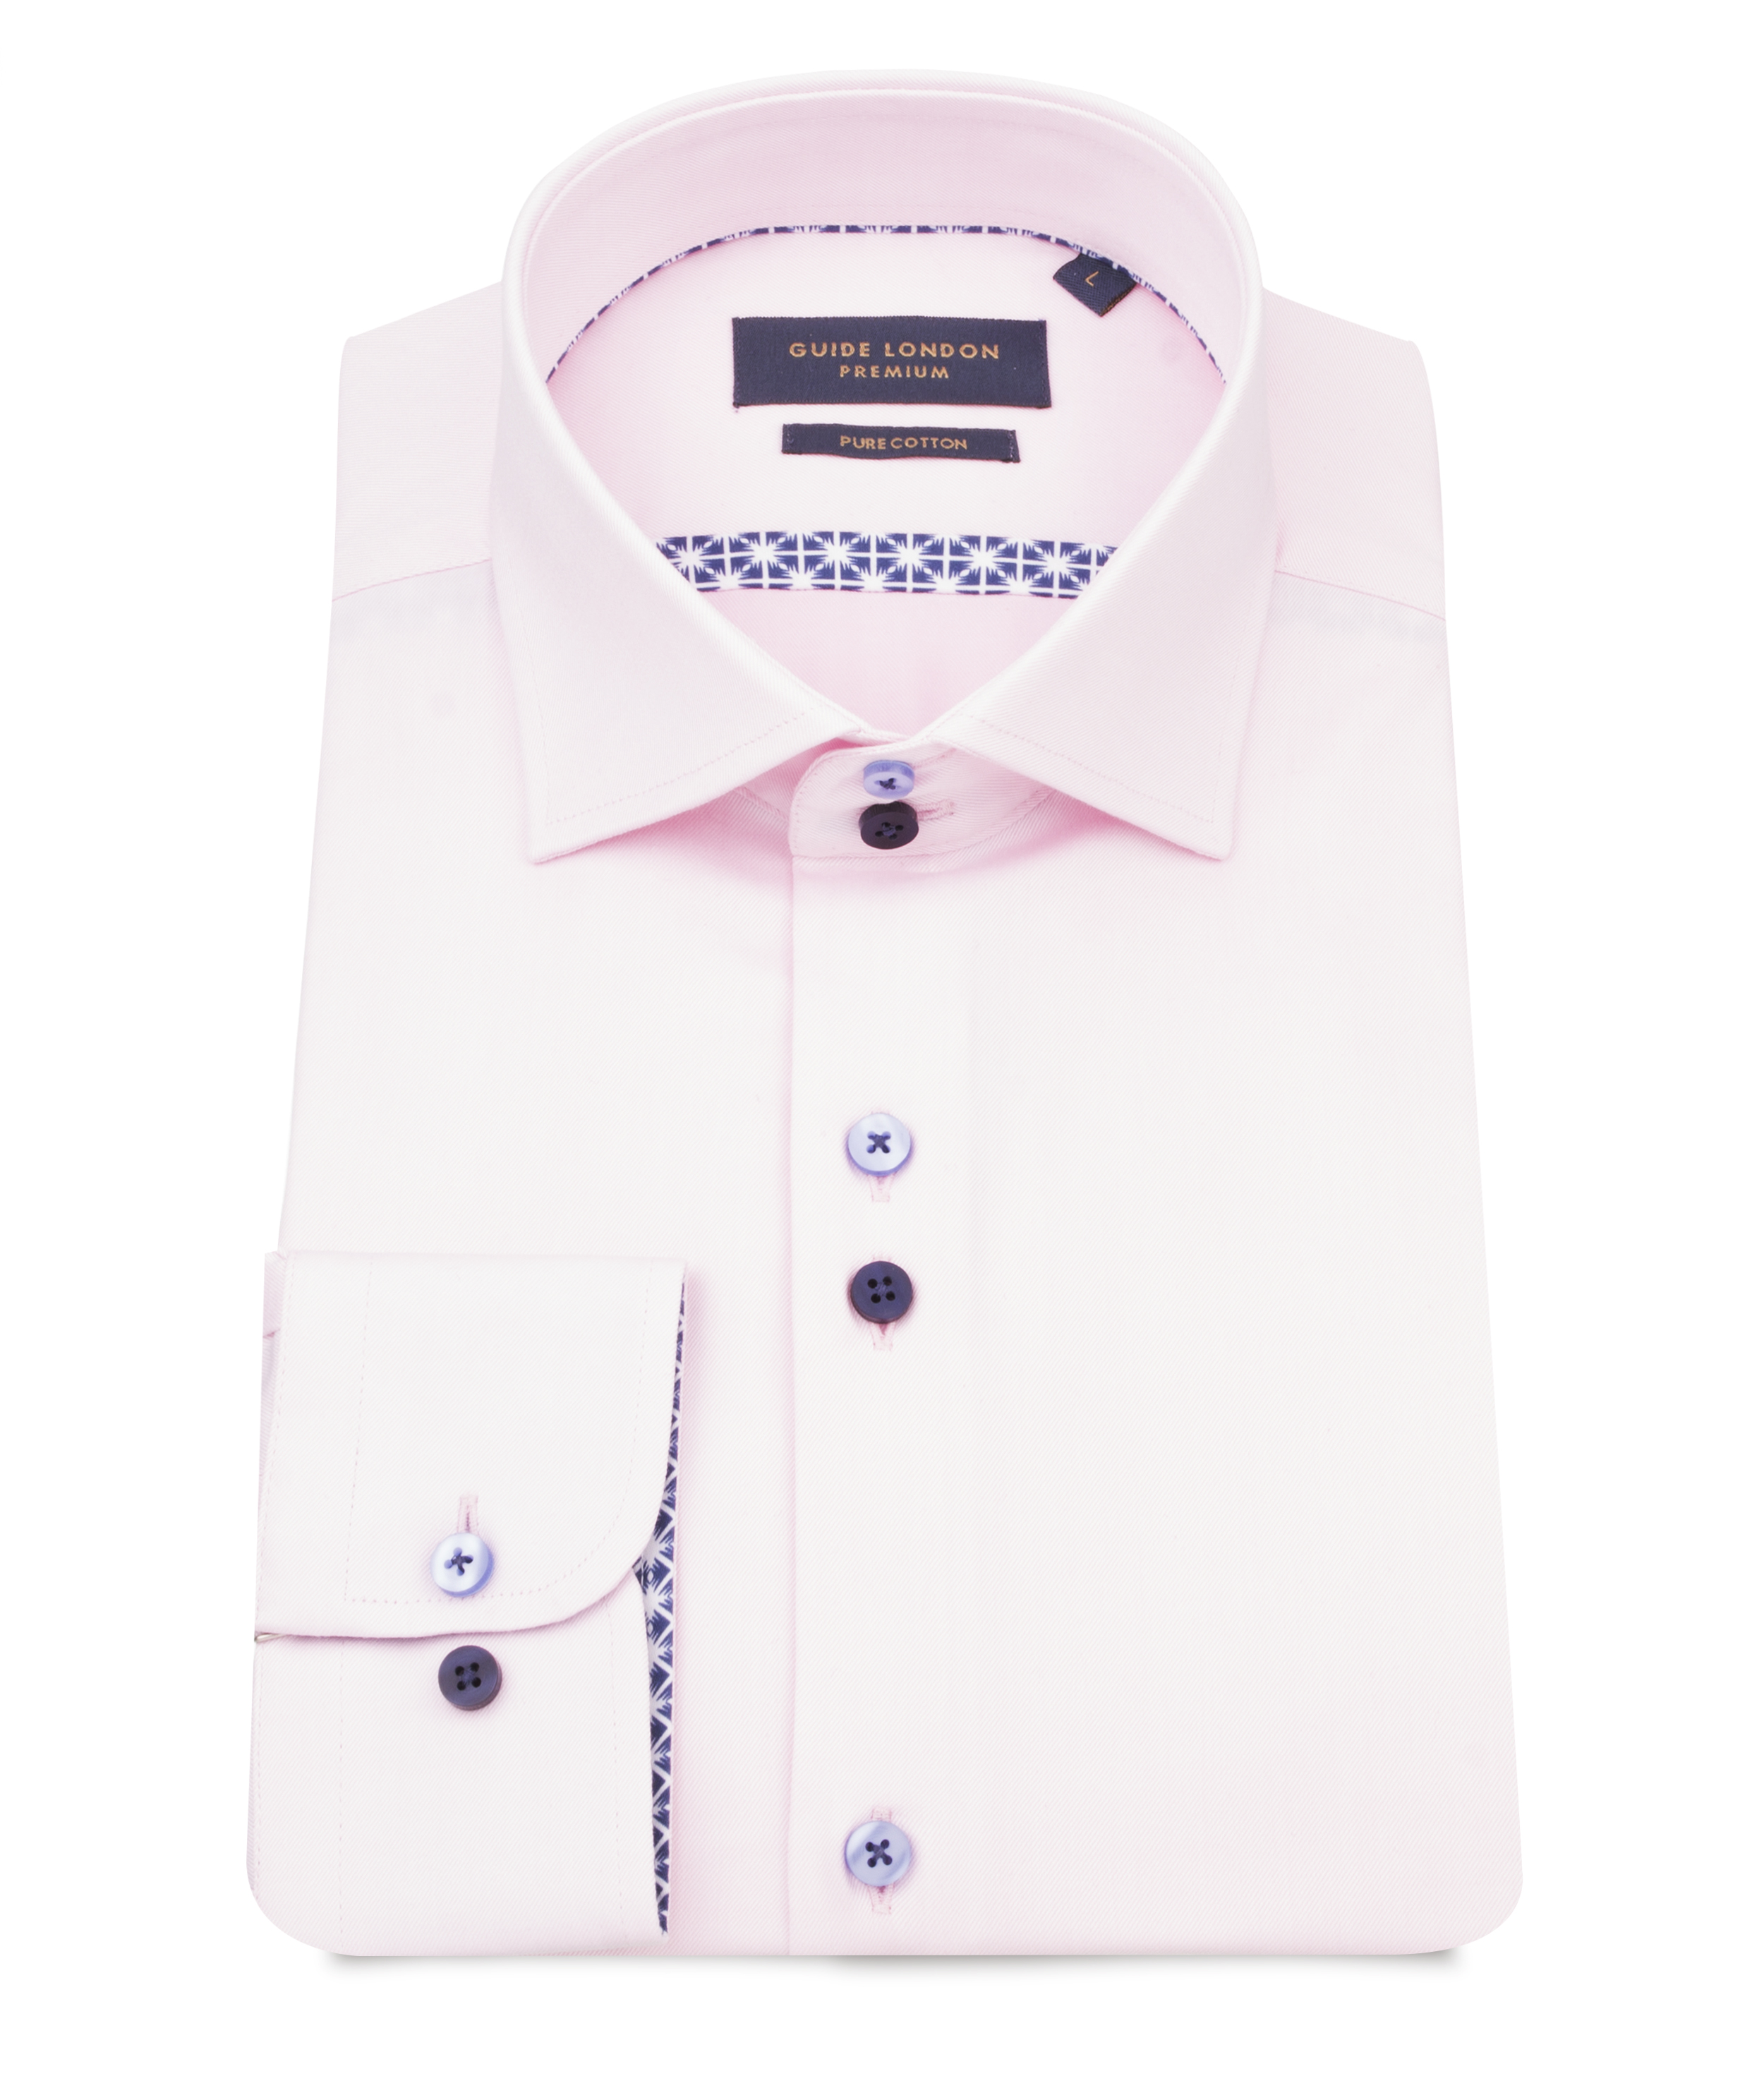 baccus smart shirts for men